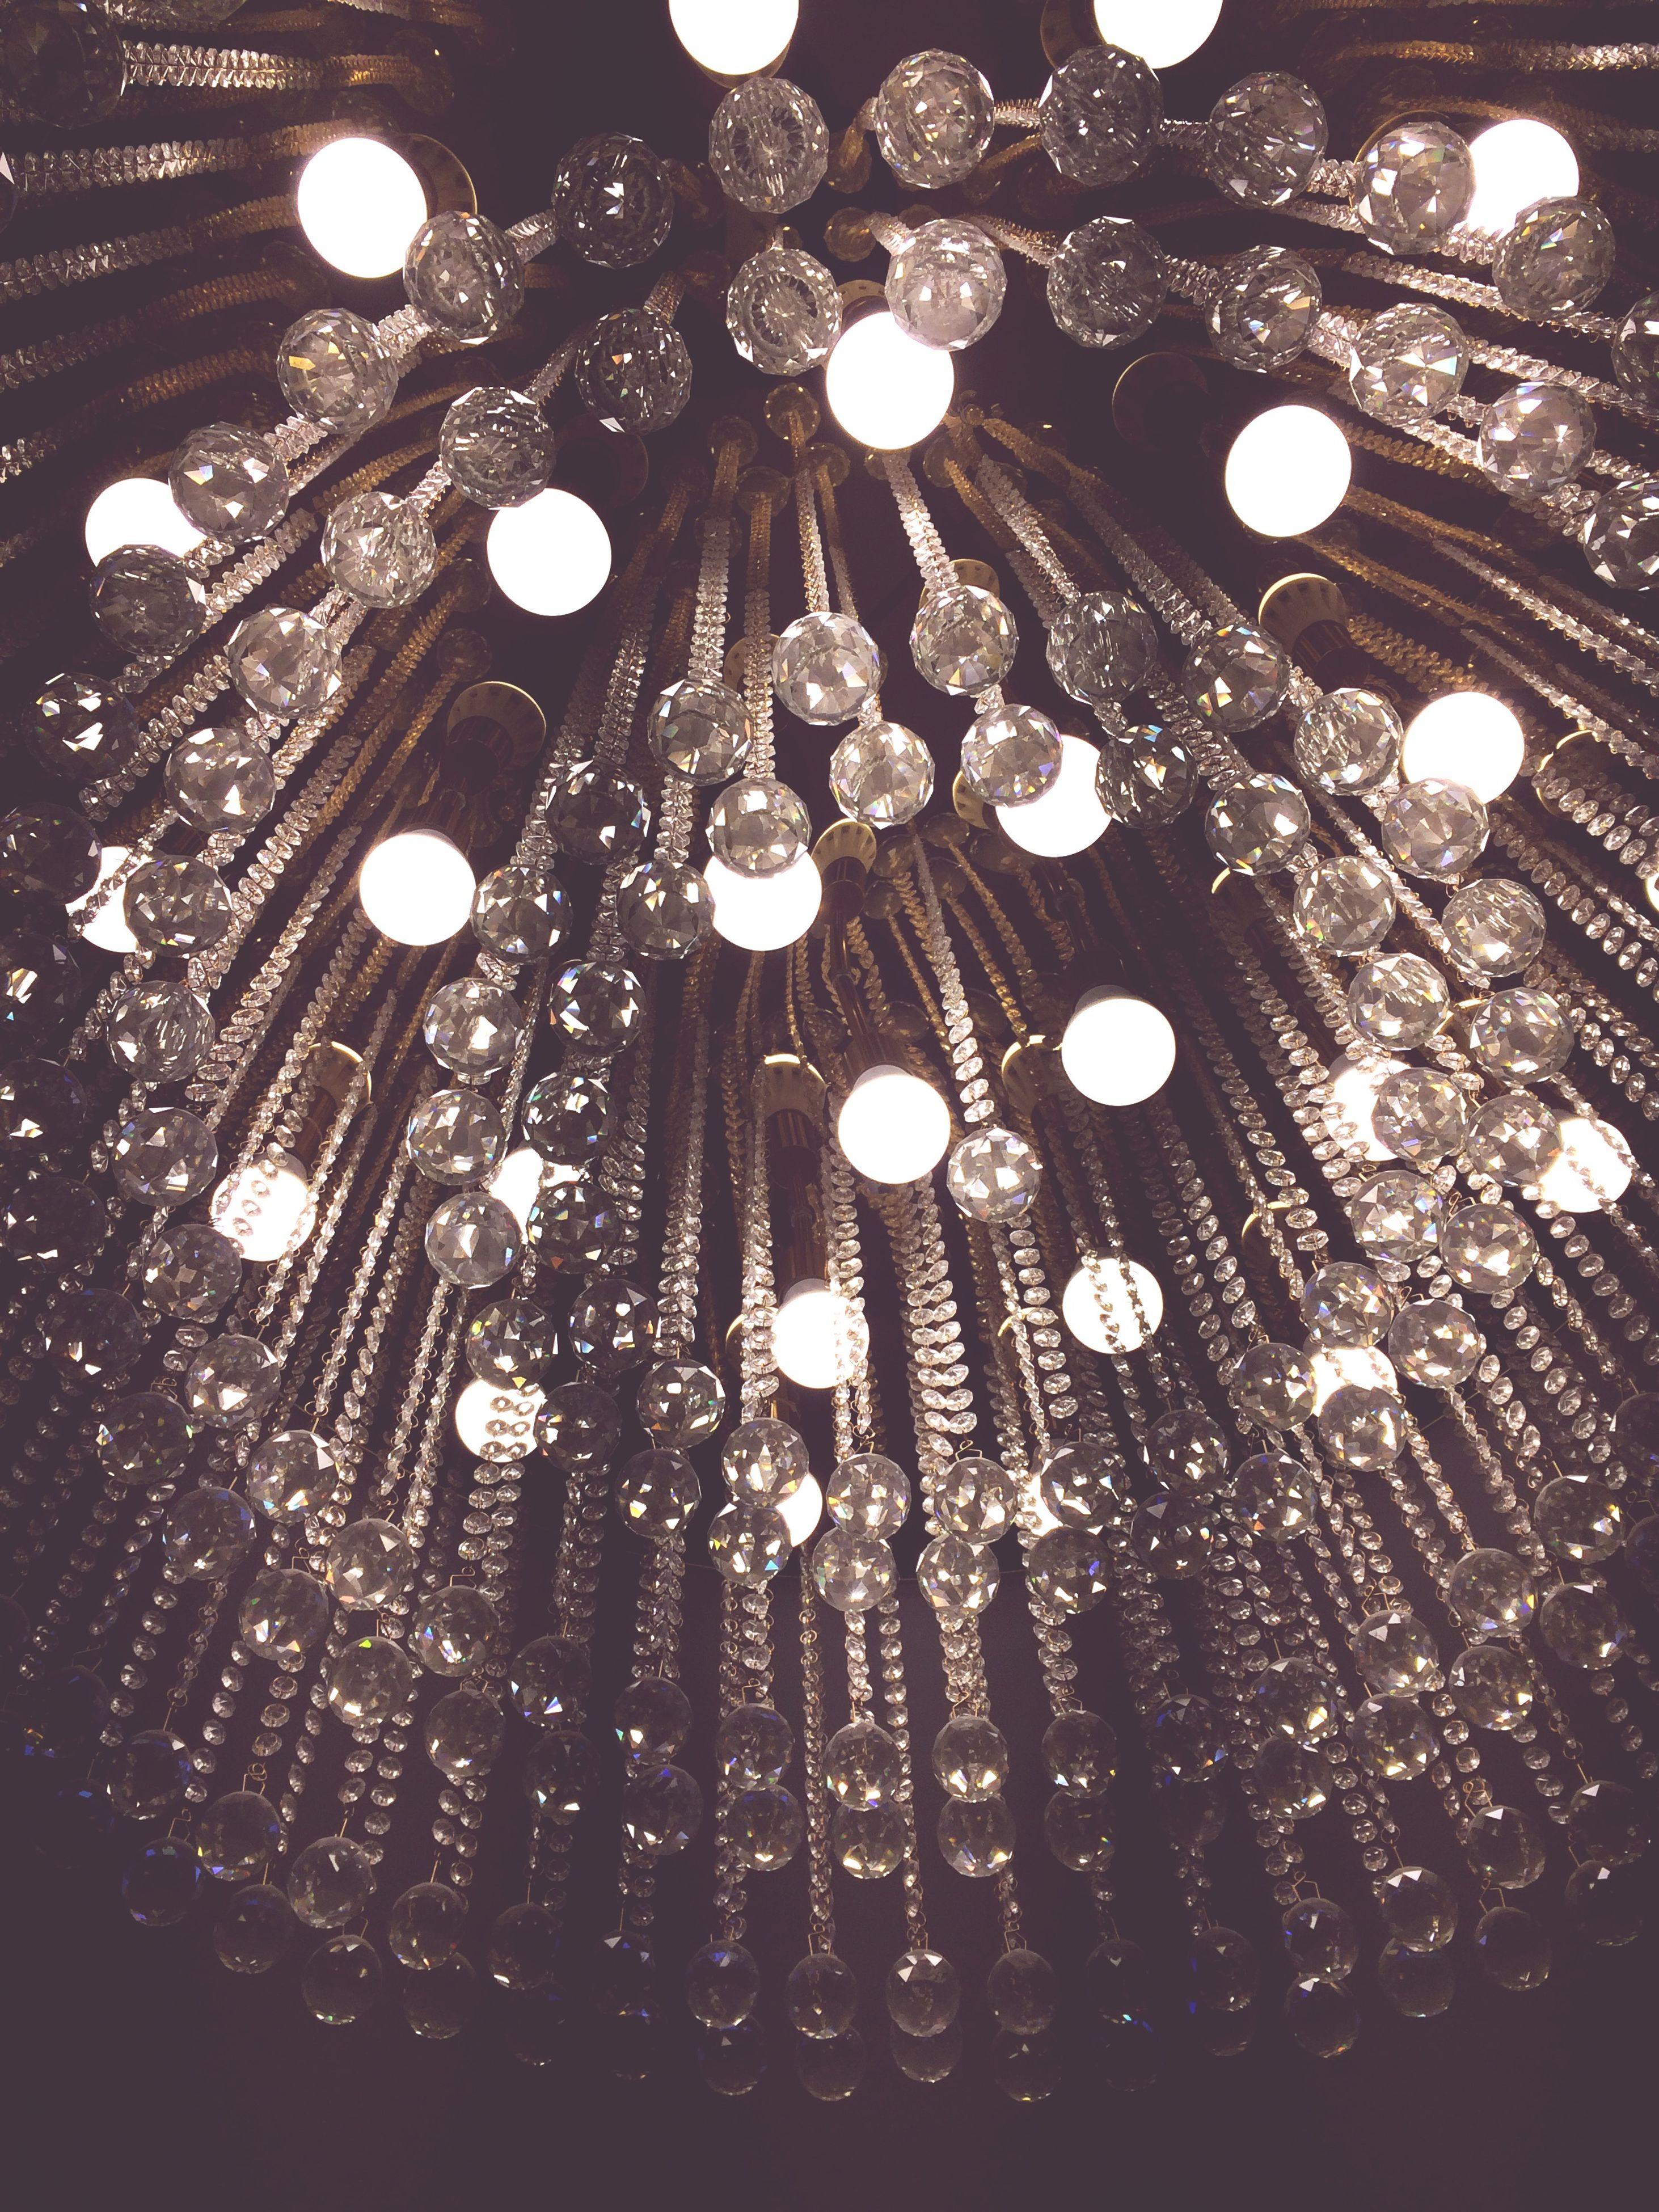 illuminated, indoors, low angle view, lighting equipment, celebration, night, ceiling, decoration, hanging, chandelier, arts culture and entertainment, glowing, light - natural phenomenon, christmas lights, decor, electric light, pattern, design, christmas decoration, electricity